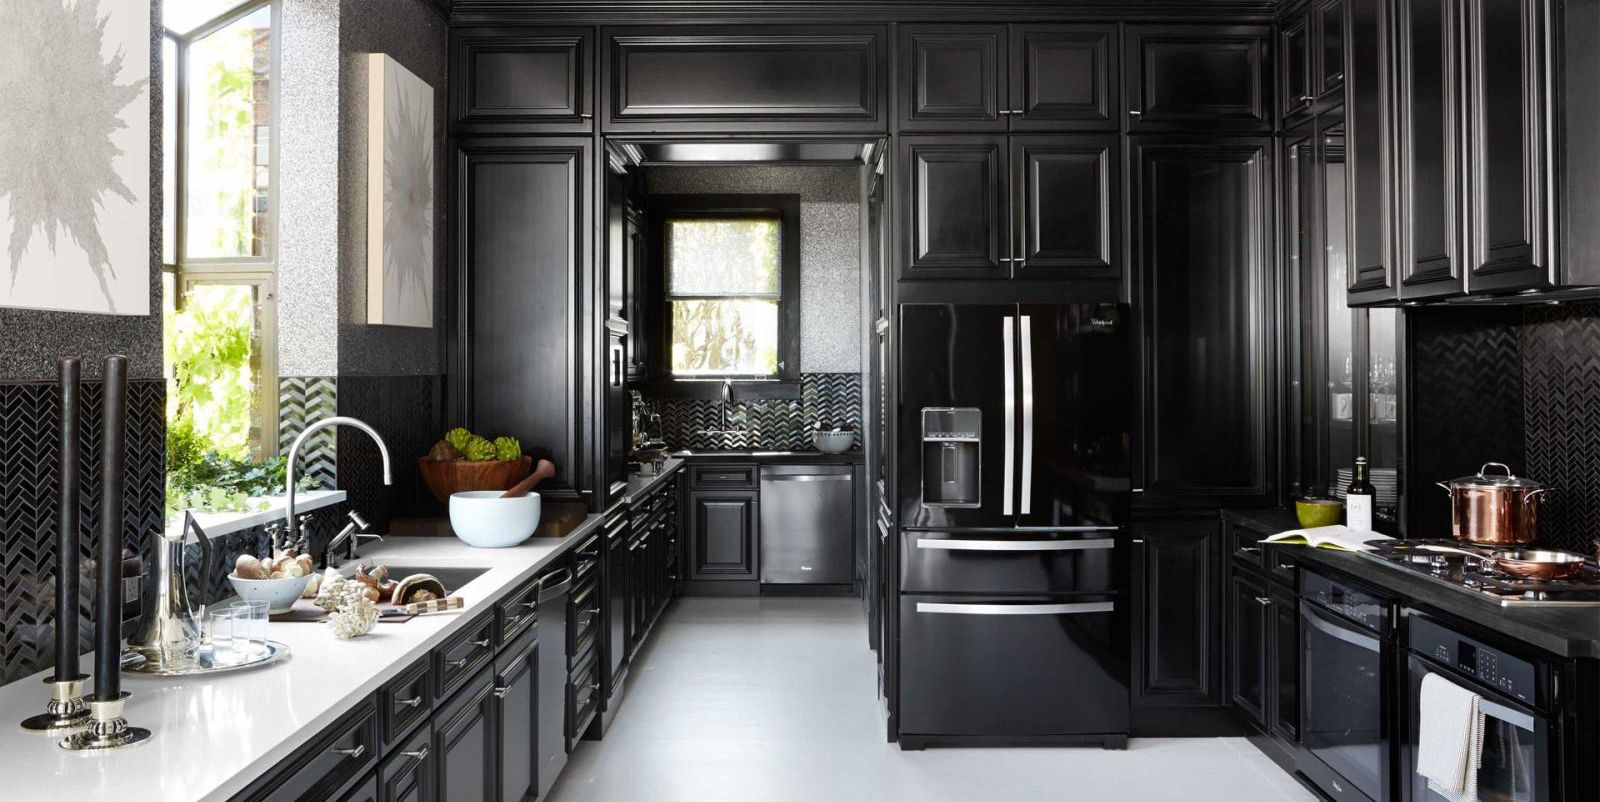 12 Black Kitchens - Black Cabinet And Backsplash Ideas